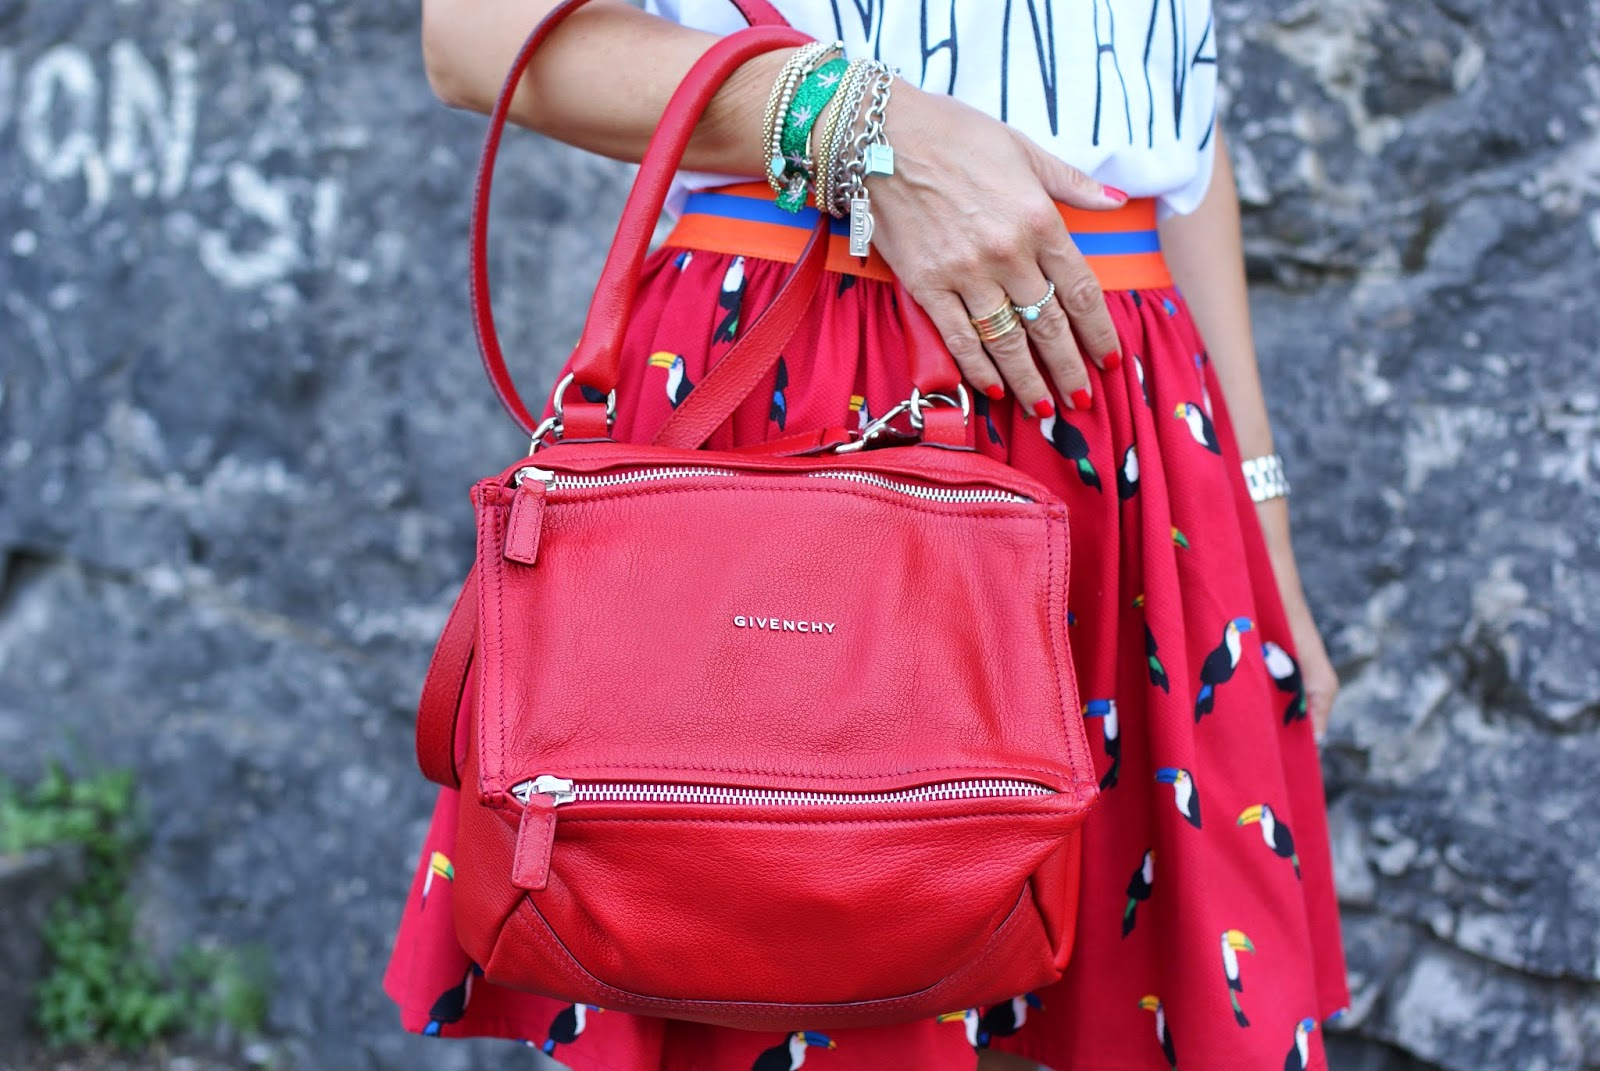 Givenchy Pandora in red, BVLGARI ring, small Pandora, Fashion and Cookies, fashion blogger